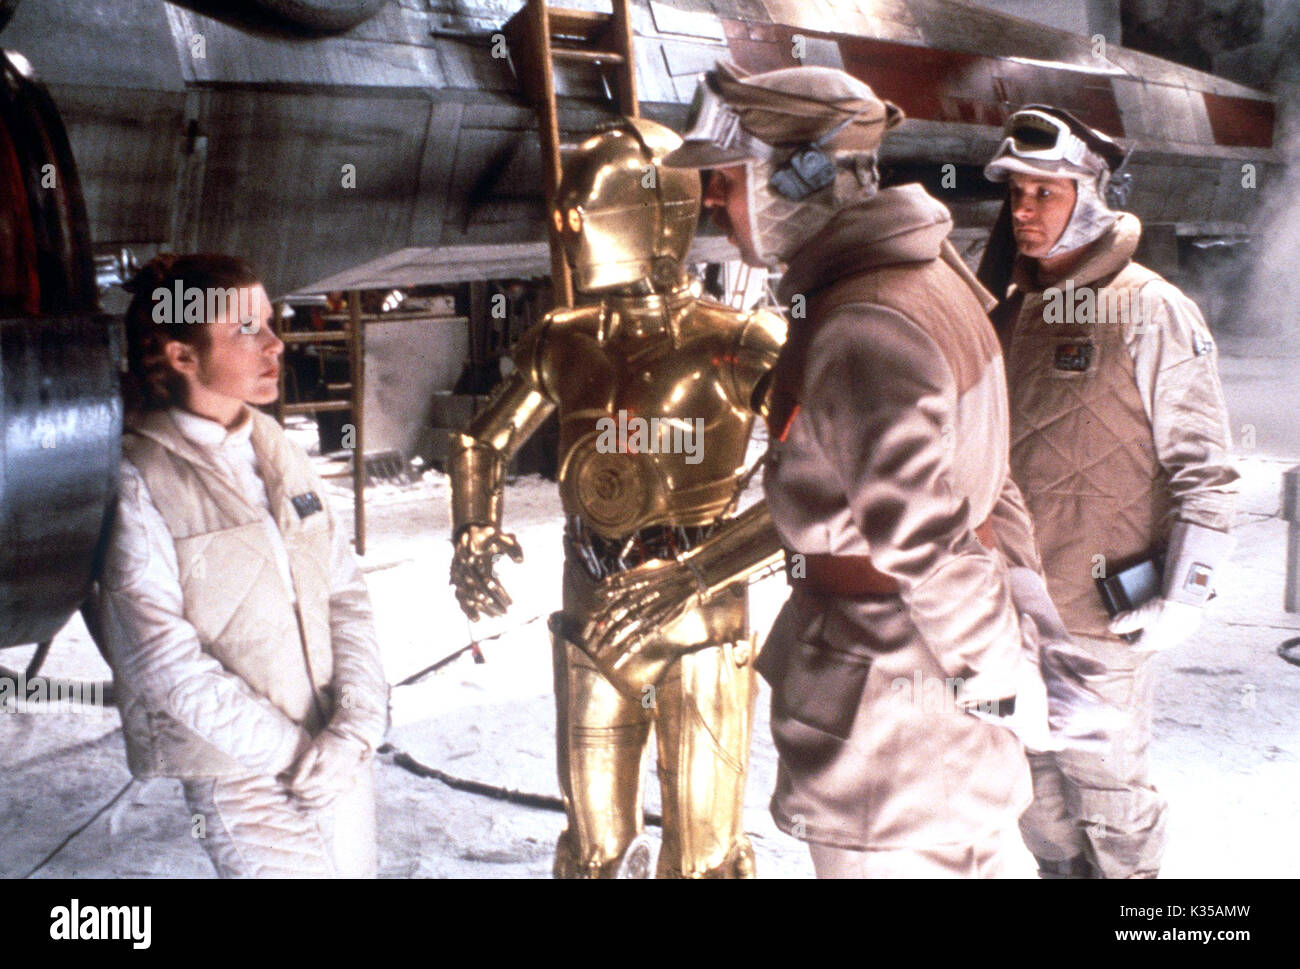 Photo Must Be Credited ©Supplied by Alpha 070000 (1980) Carrie Fisher as Princess Leia and Anthony Daniels as C-3PO in Star Wars The Empire Strikes Back movie - Stock Image